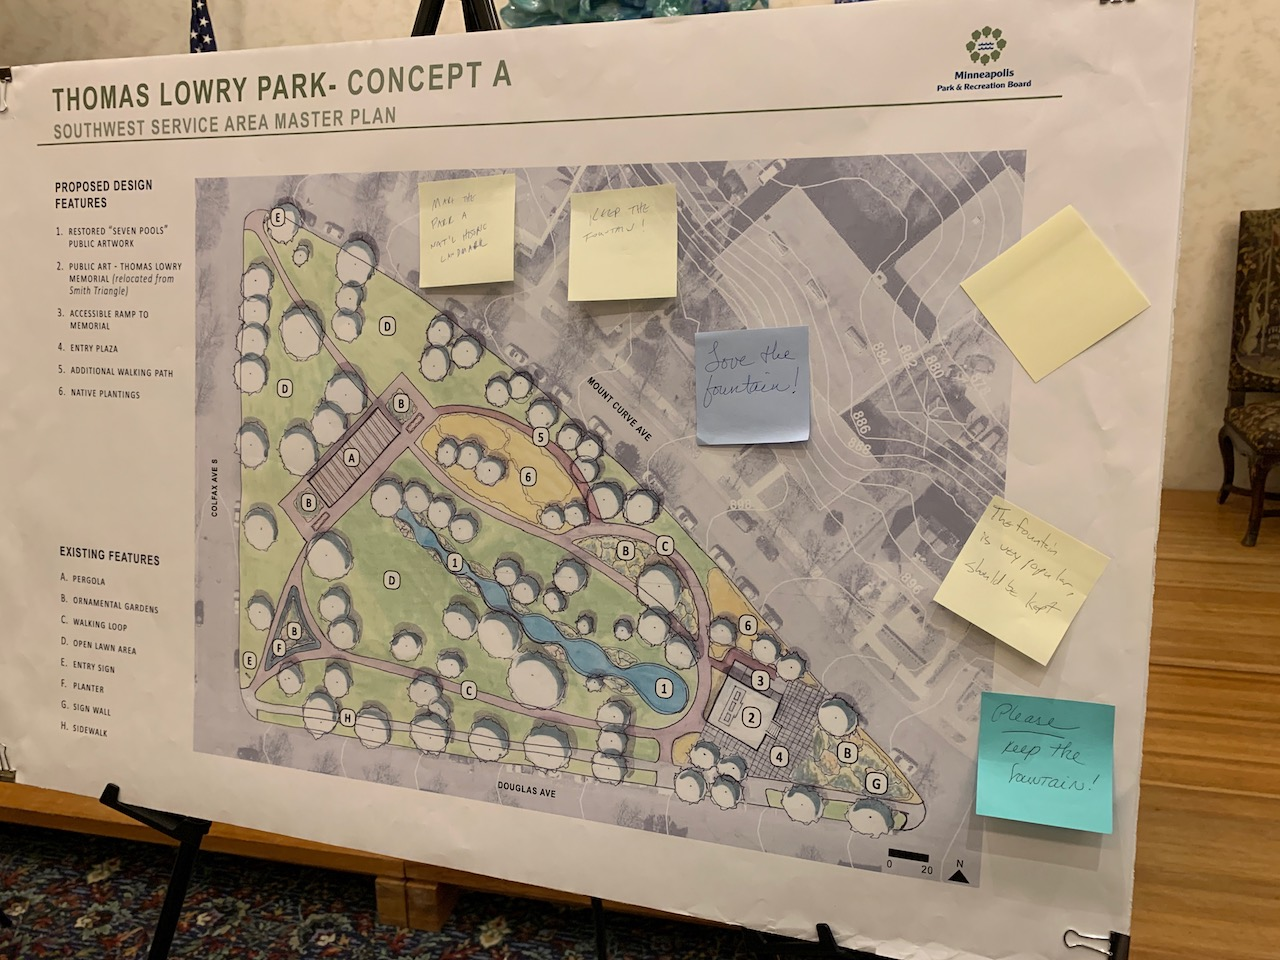 Comments left on a concept that maintains the fountain at Thomas Lowry Park at a recent open house on the Southwest Area Master Plan hosted by the Minneapolis Park and Recreation Board. Photo by Andrew Hazzard.